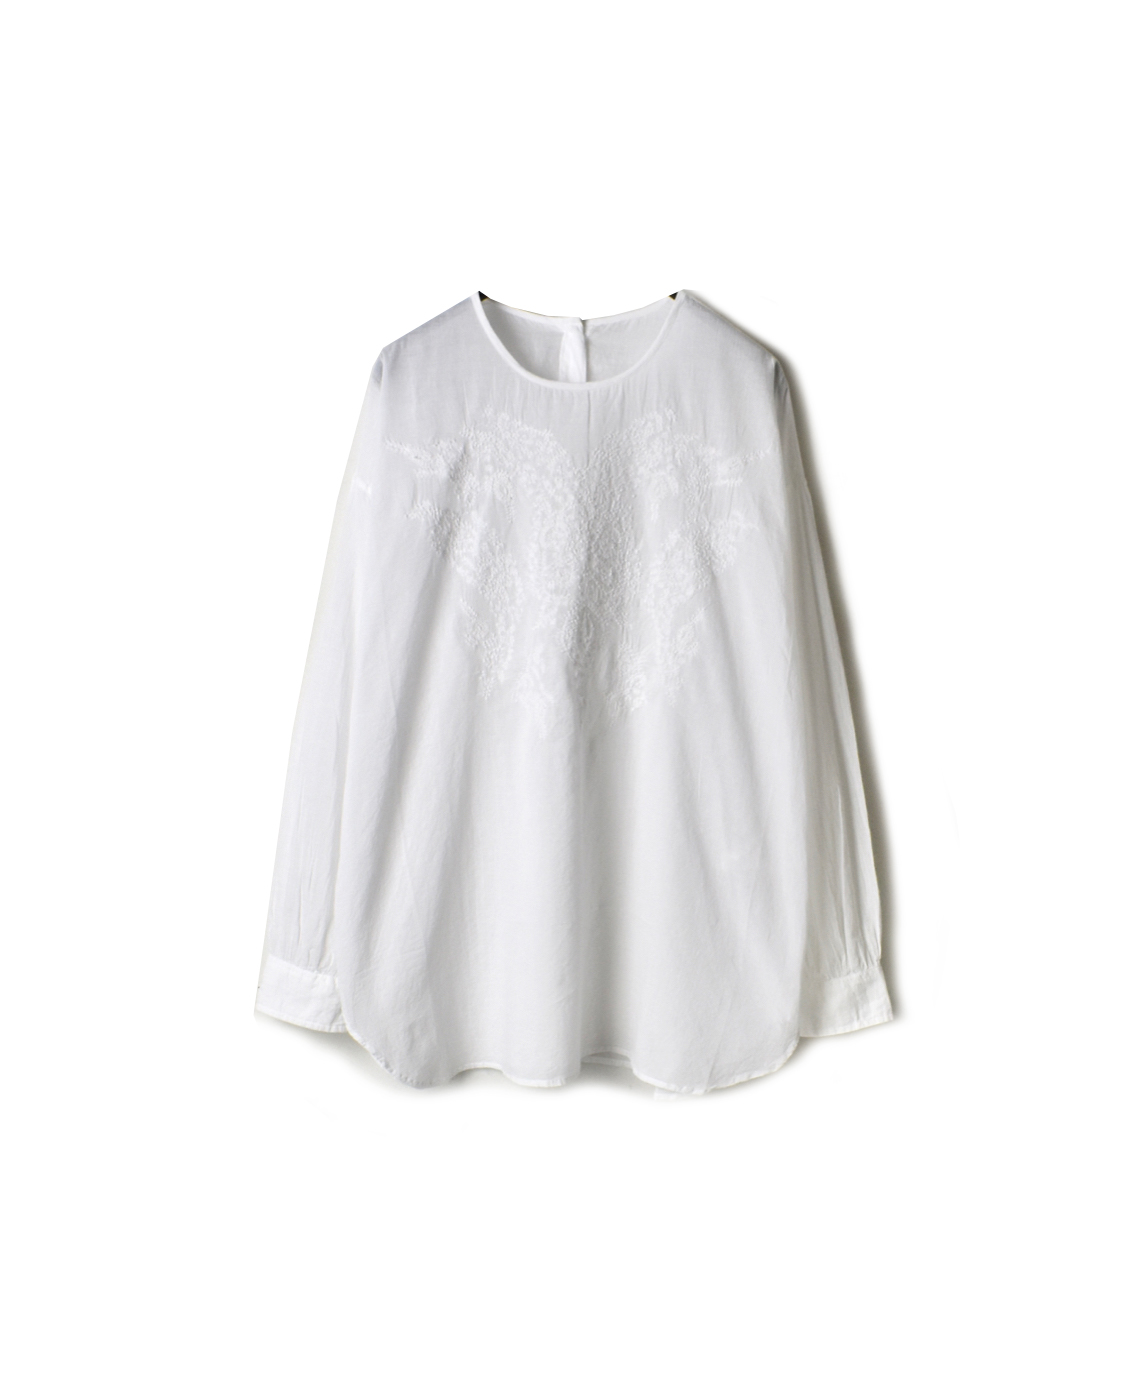 NMDS20081 ORGANIC VOILE BACK OPENING CREW-NECK EMB SHIRT